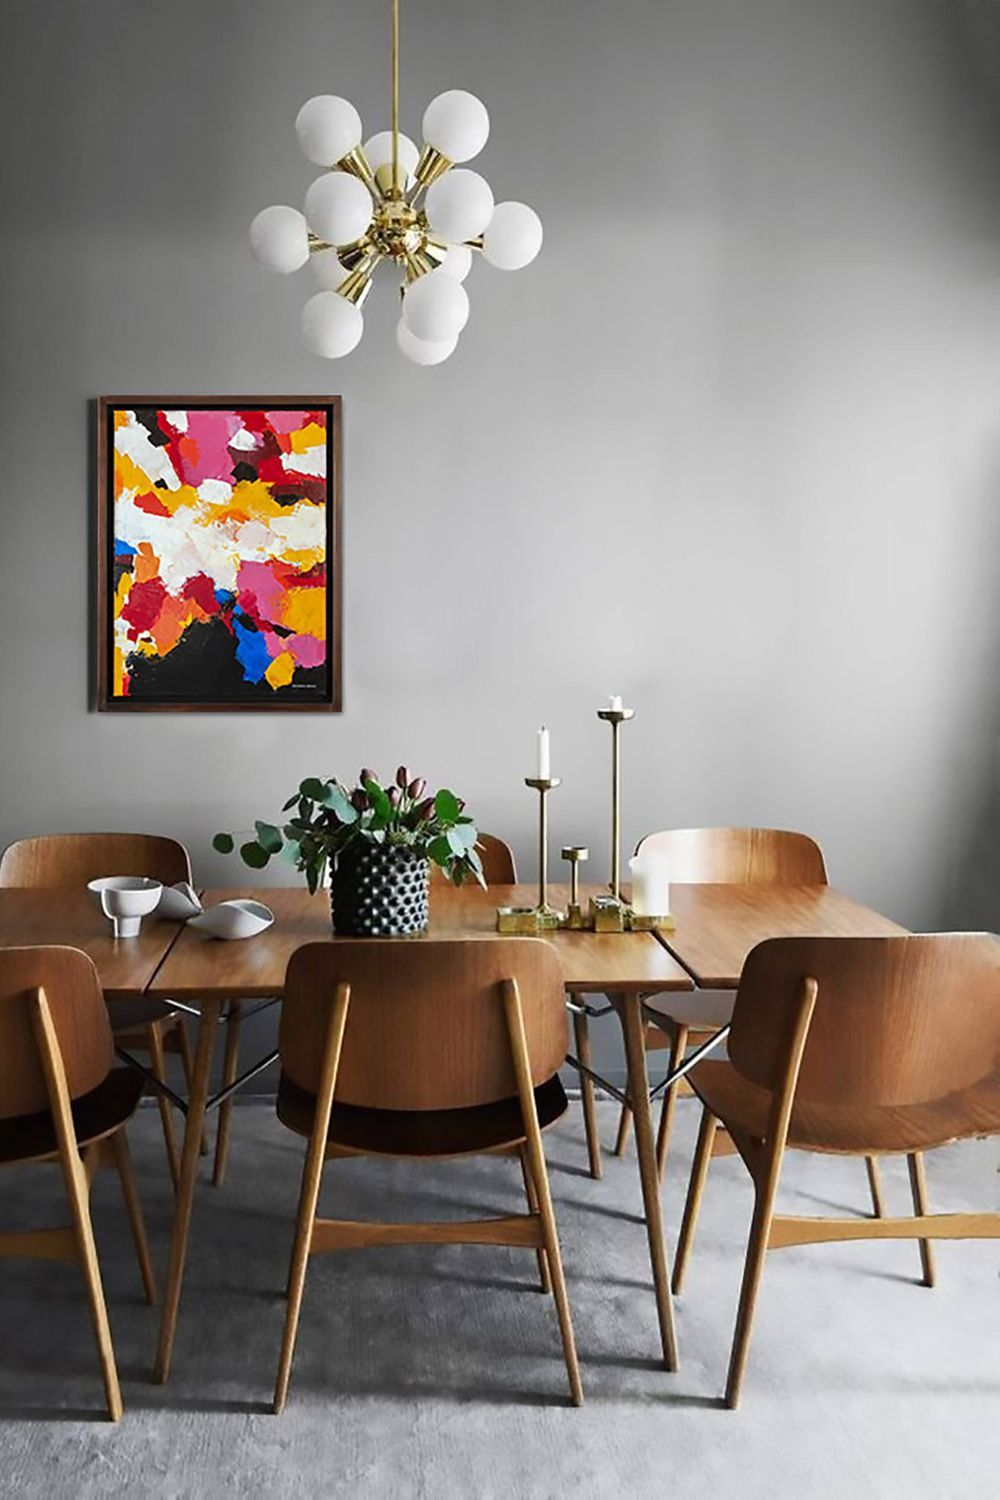 Table Chair Mid Century Modern Dining Table Furniture Interior Design In 2020 With Images Midcentury Modern